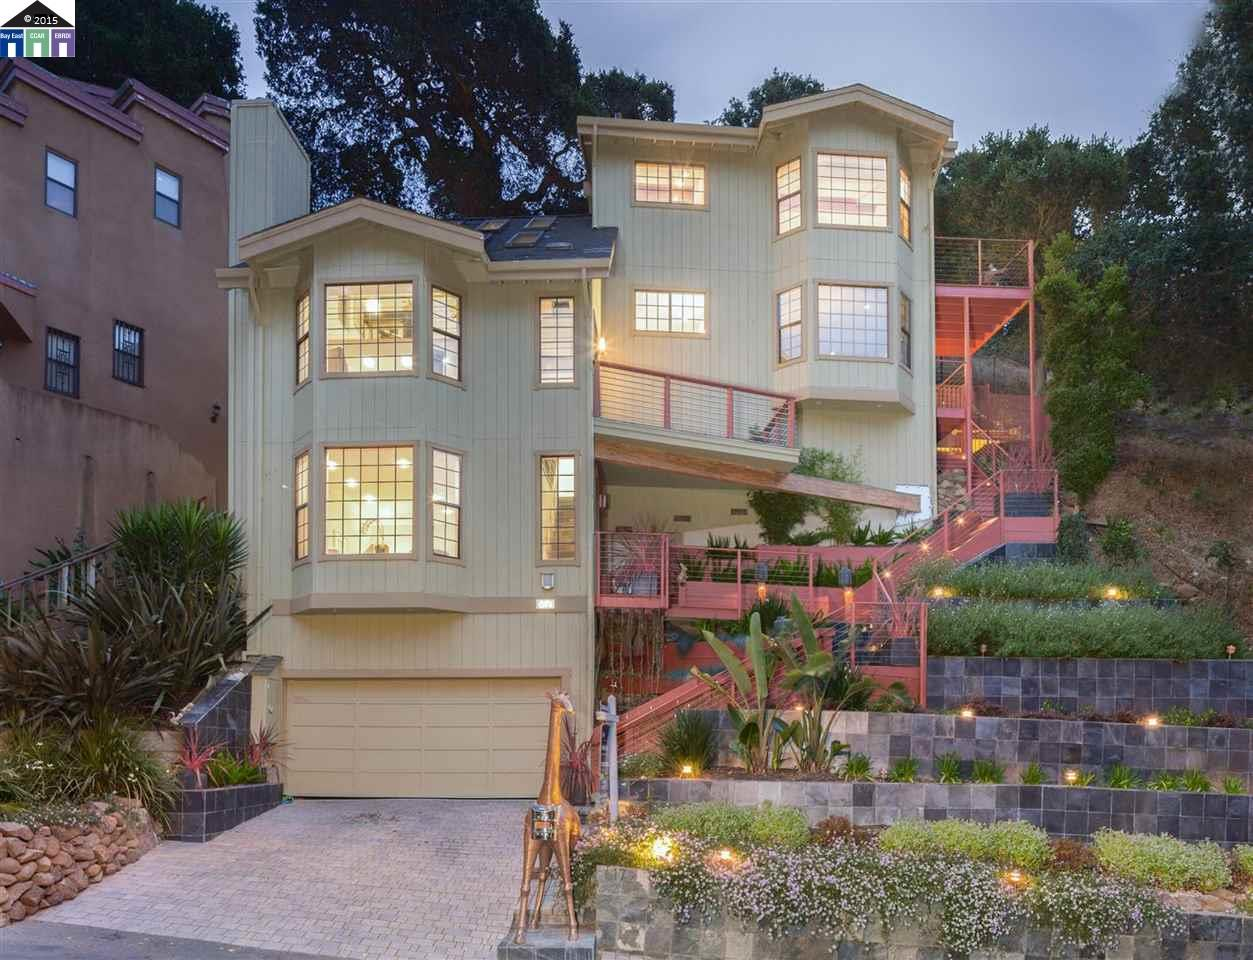 Additional photo for property listing at 6172 RUTHLAND Road  Oakland, カリフォルニア 94611 アメリカ合衆国